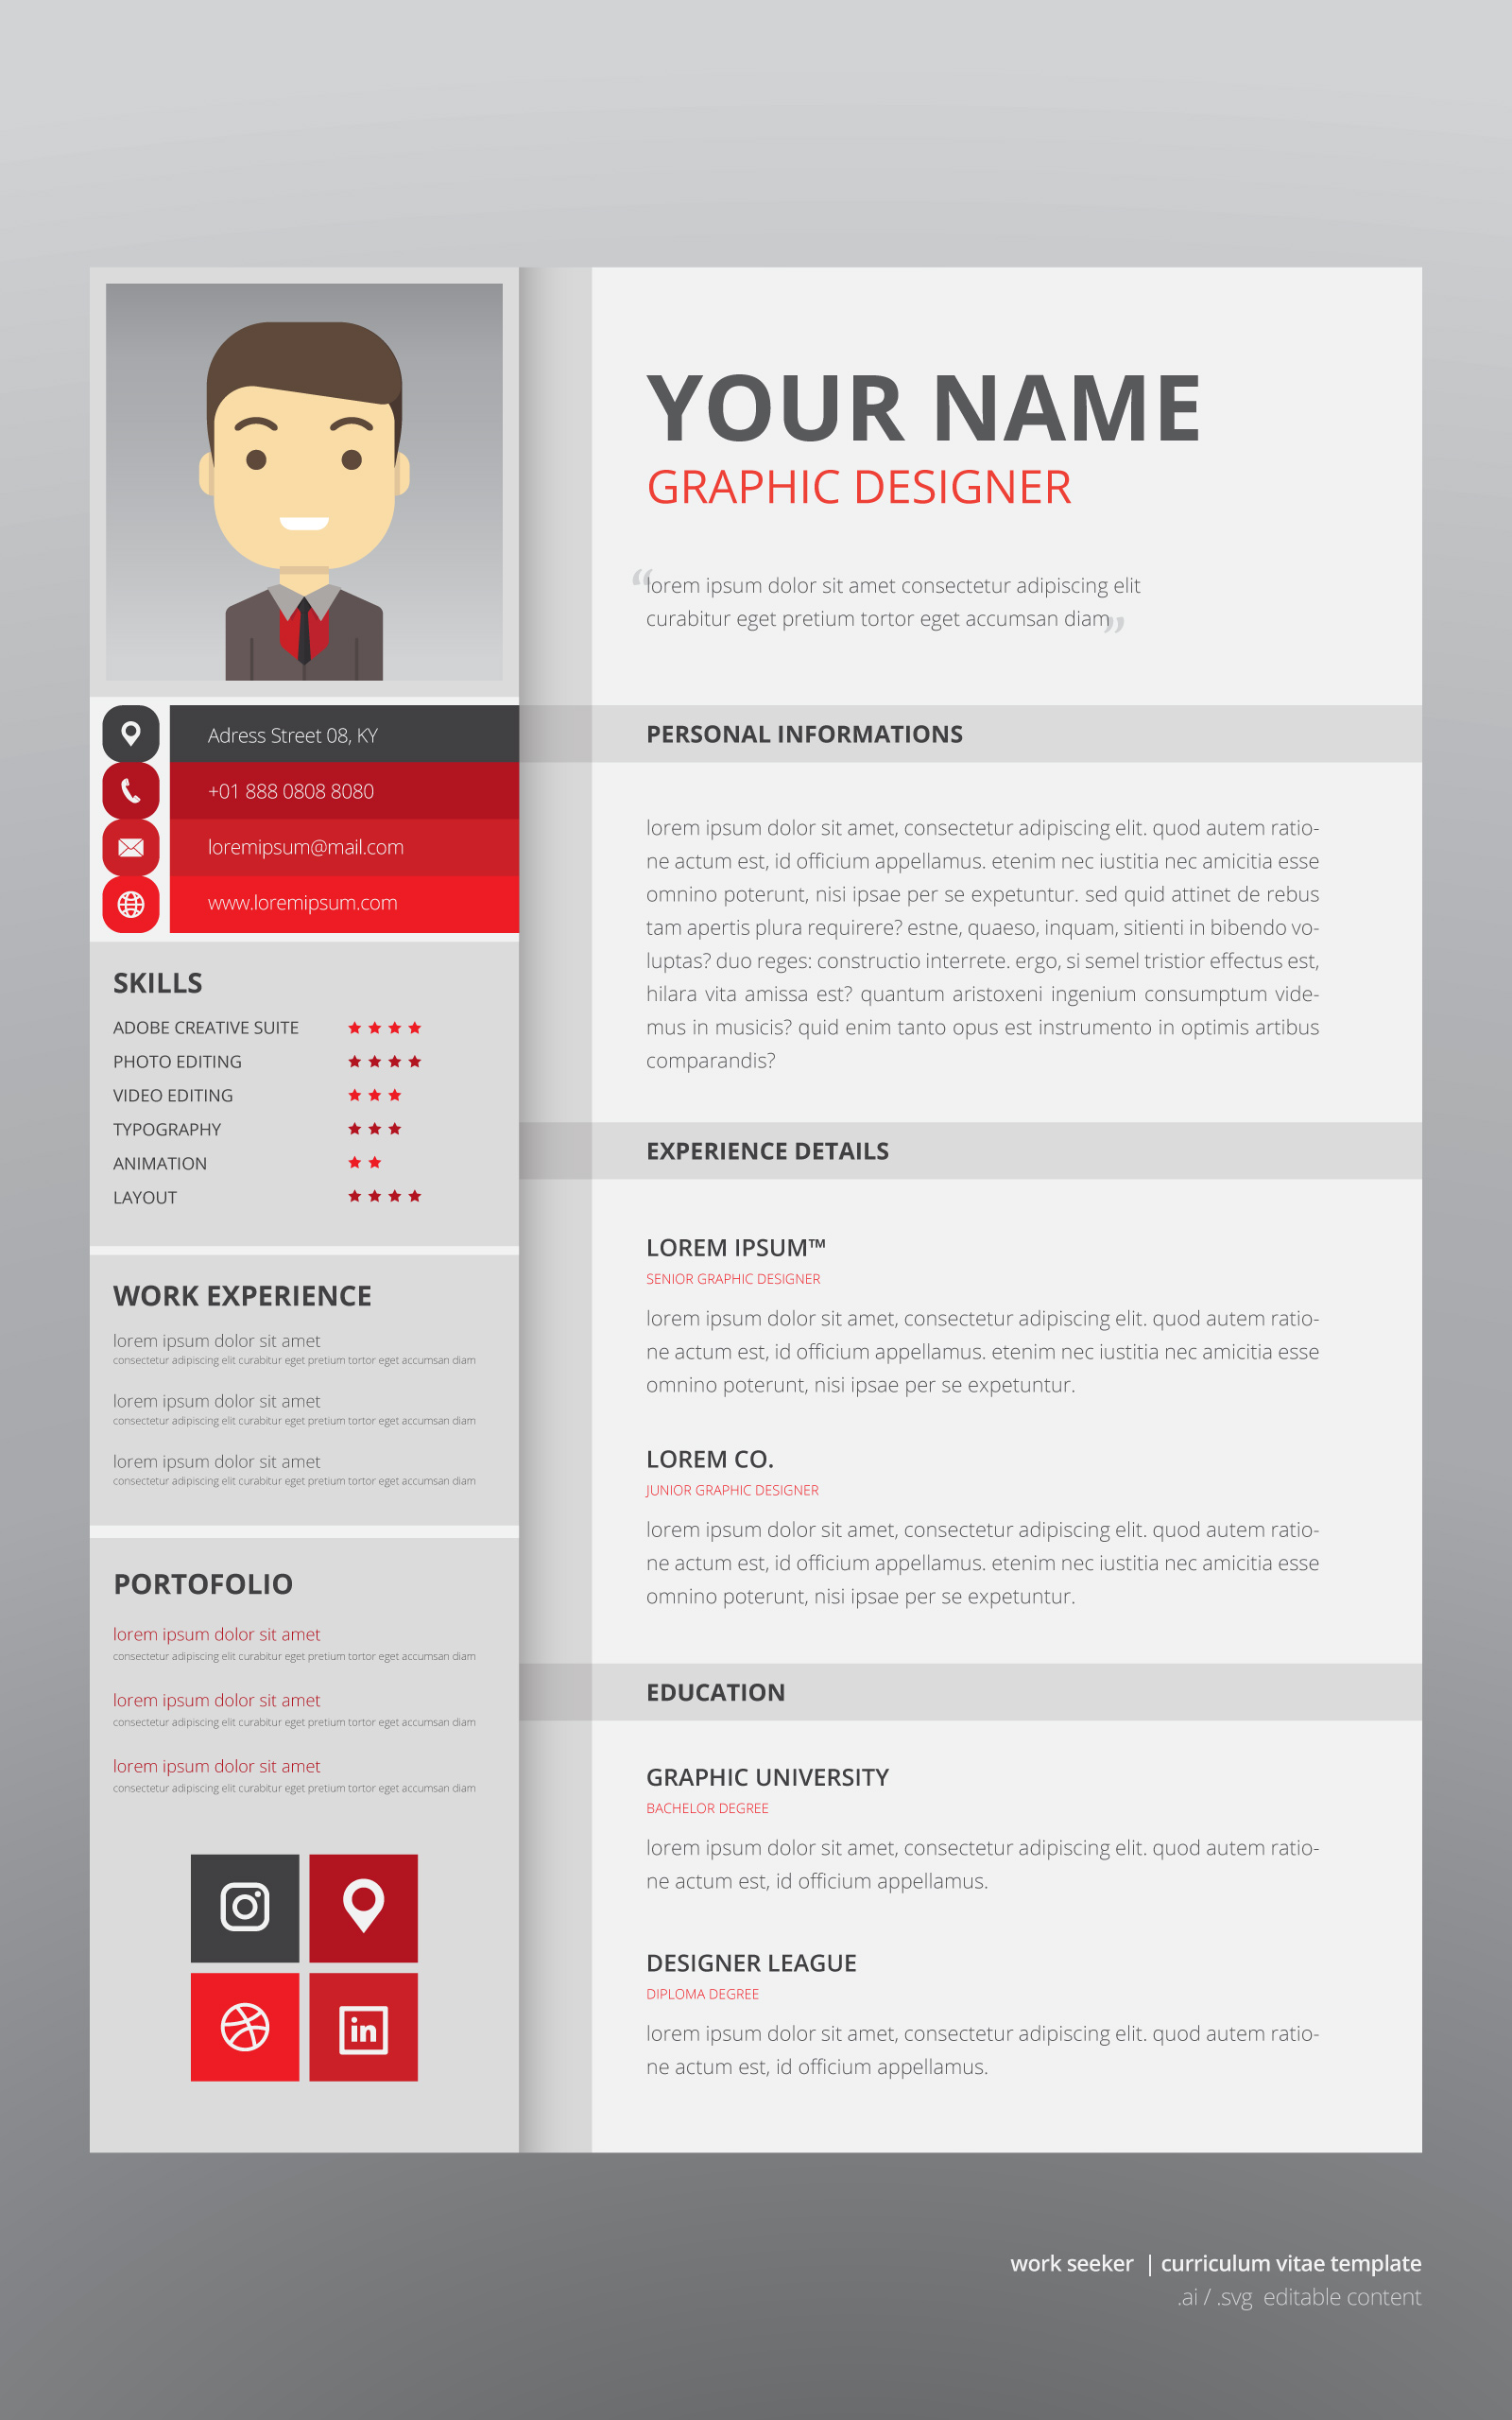 Job Search Curriculum Vitae Template Download Free Vector Art Stock Graphics Images